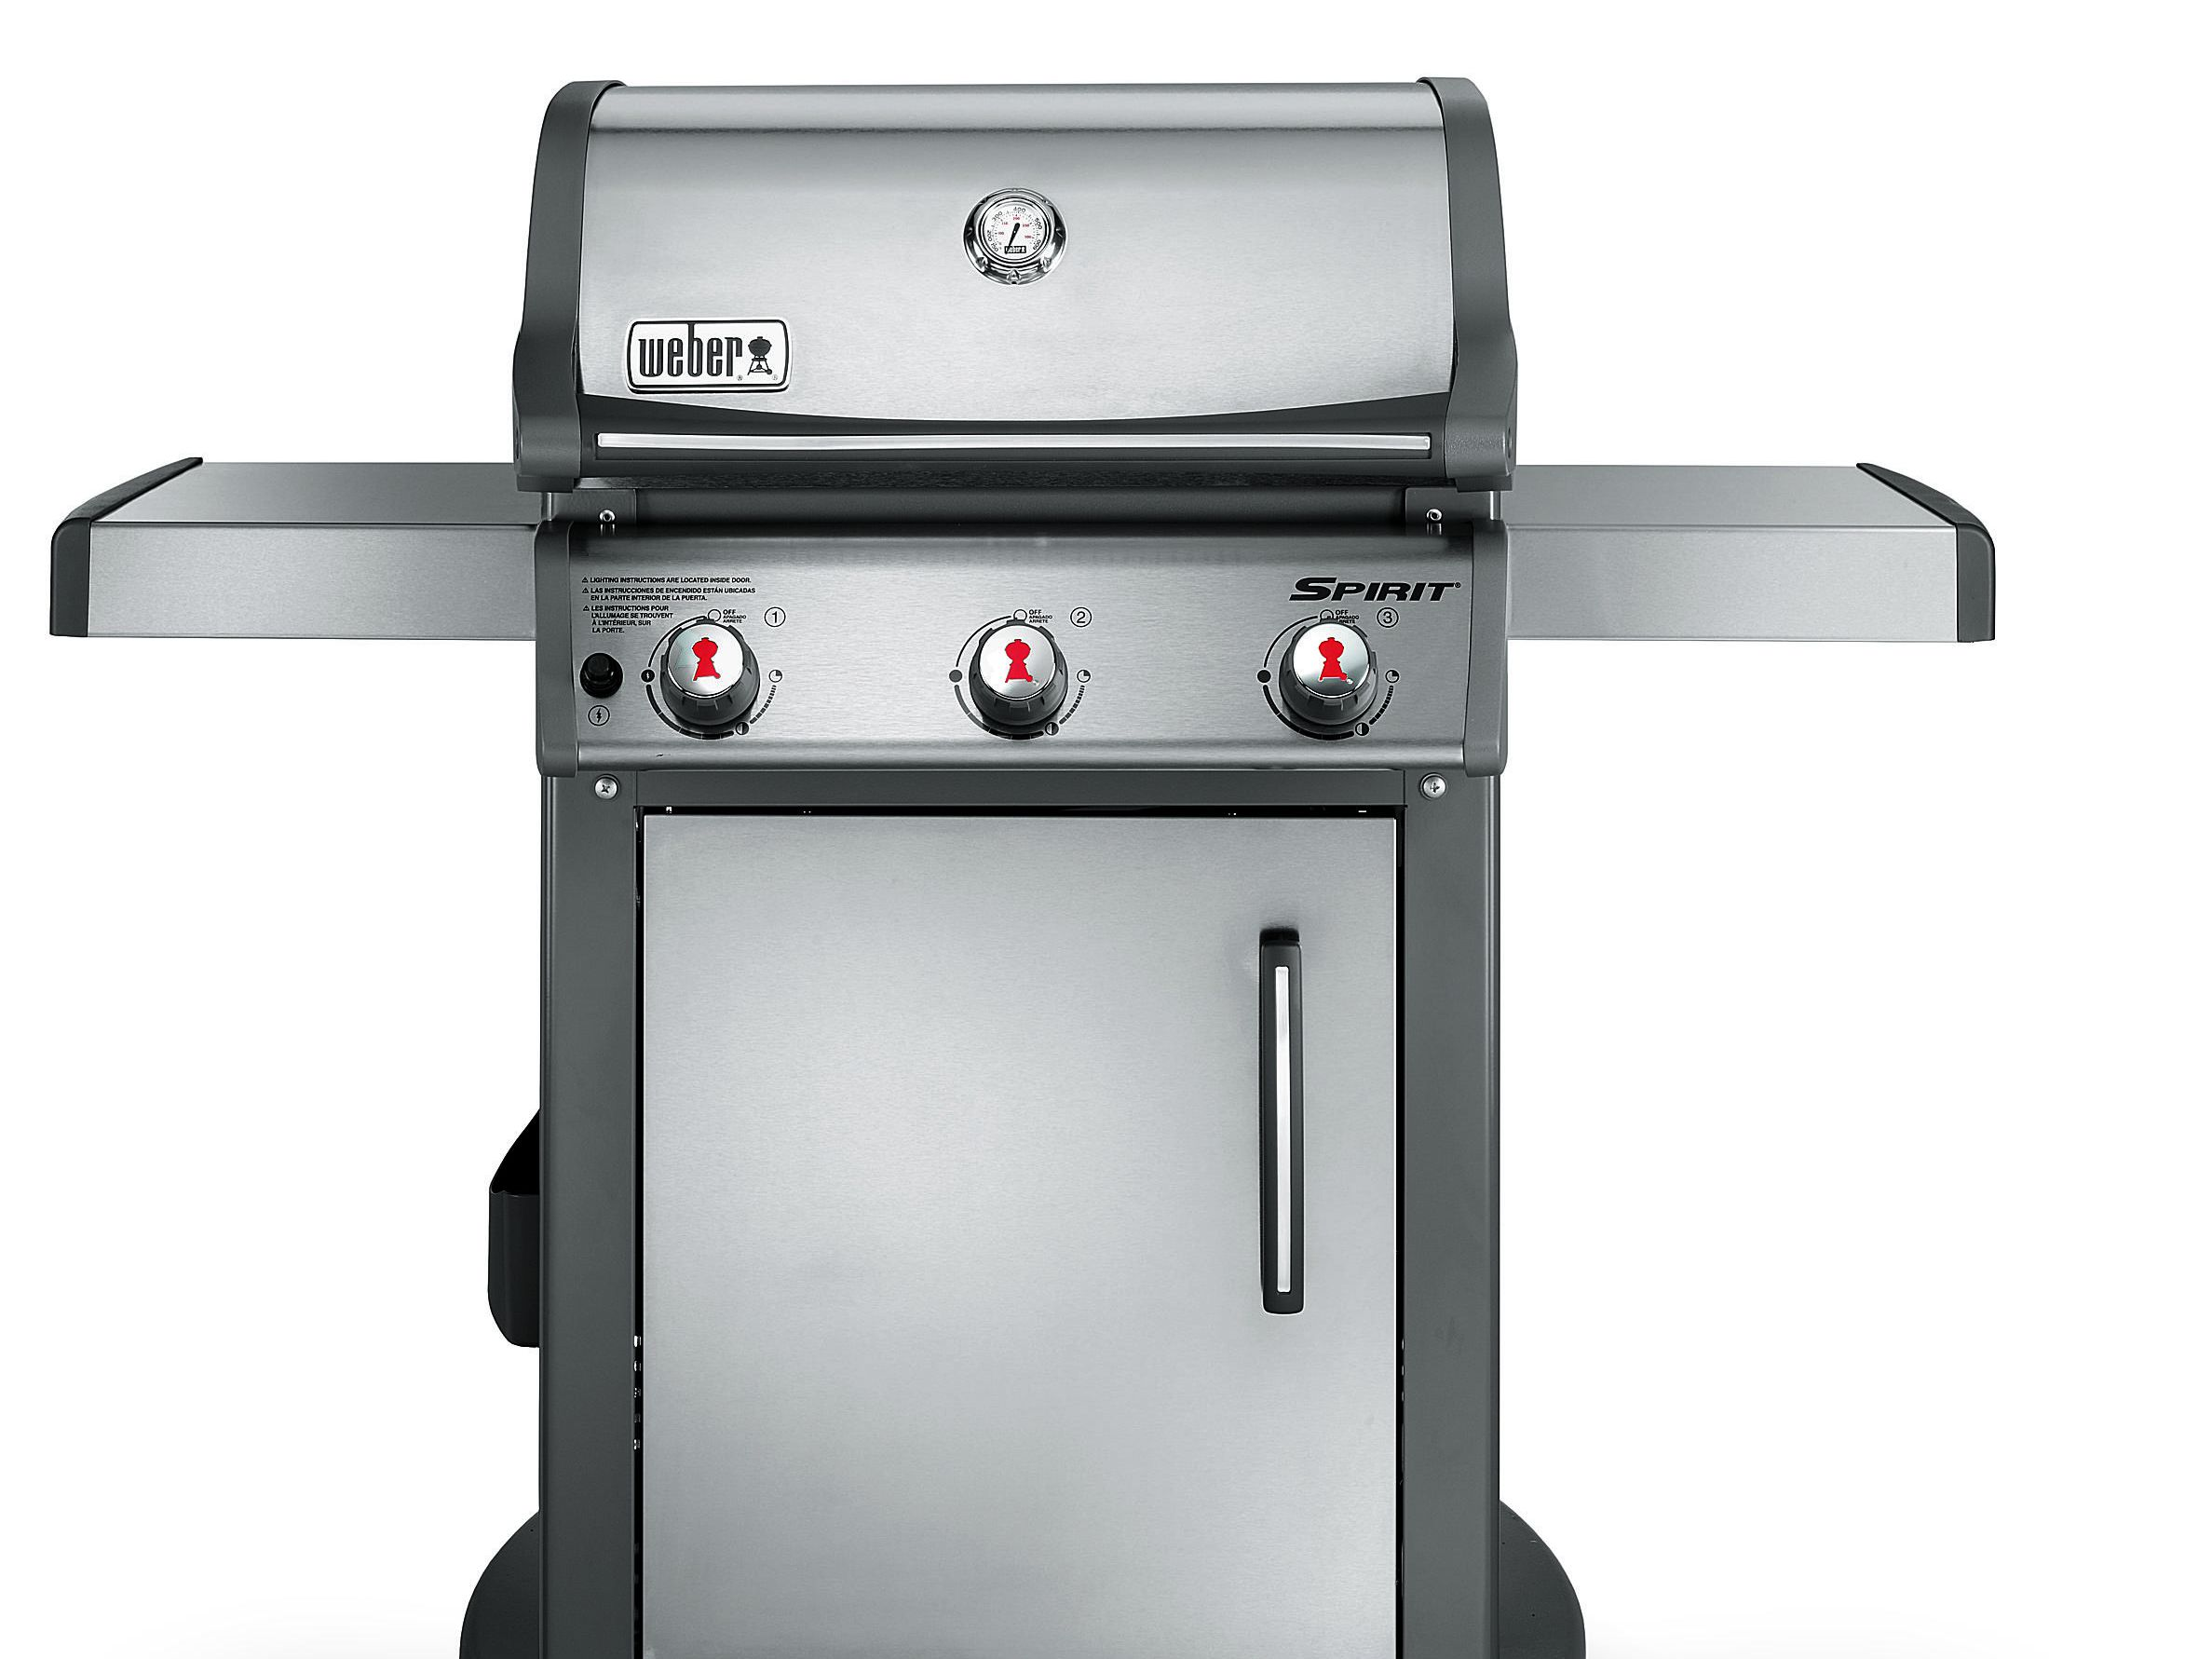 The Weber Spirit SP-310 Gas Grill: A Detailed Review